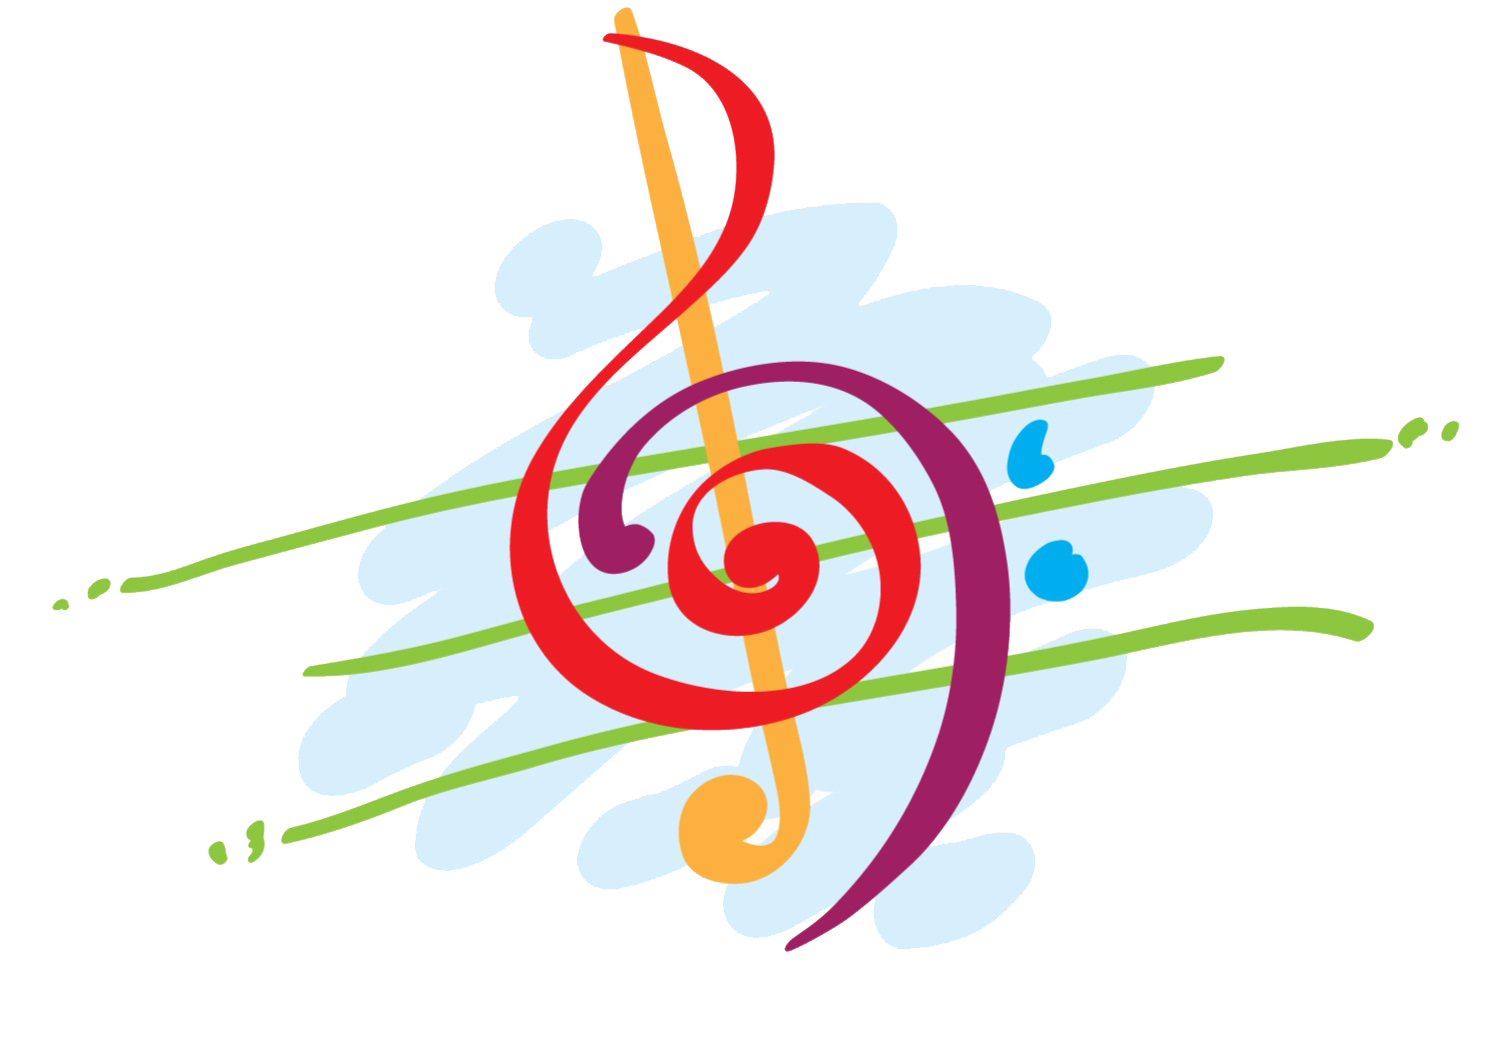 Png transparent free images. Holidays clipart music